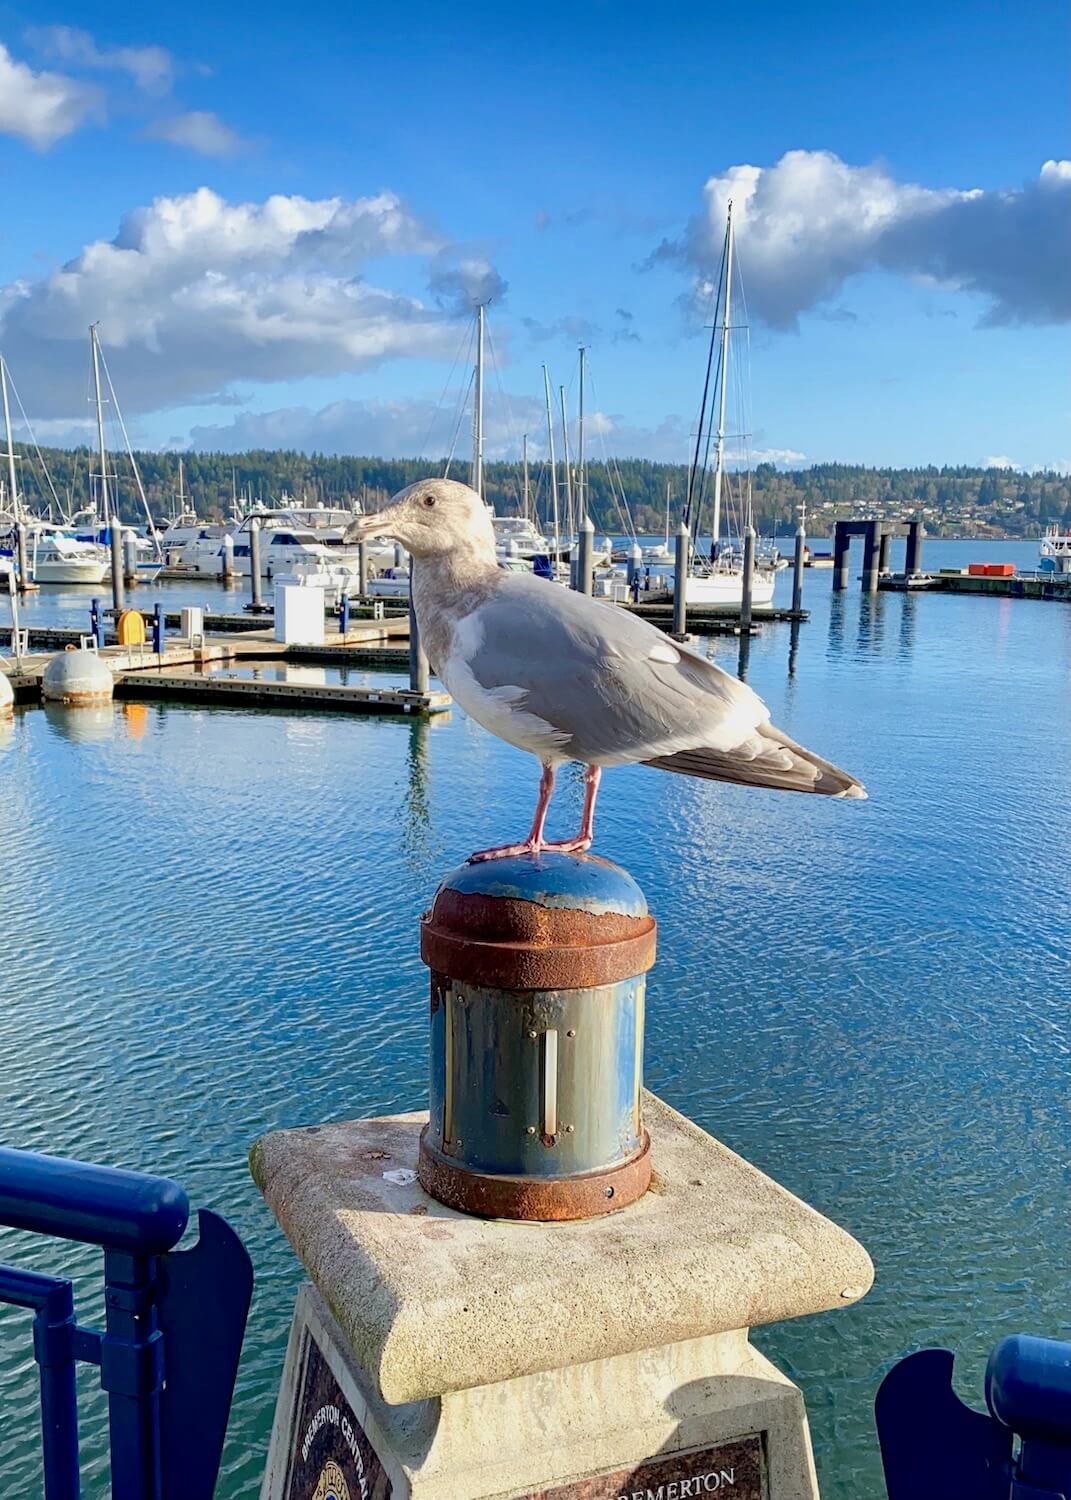 A seagull sits on a piling in a Bremerton marina with sailboats in the marina in the background and blue sky above.